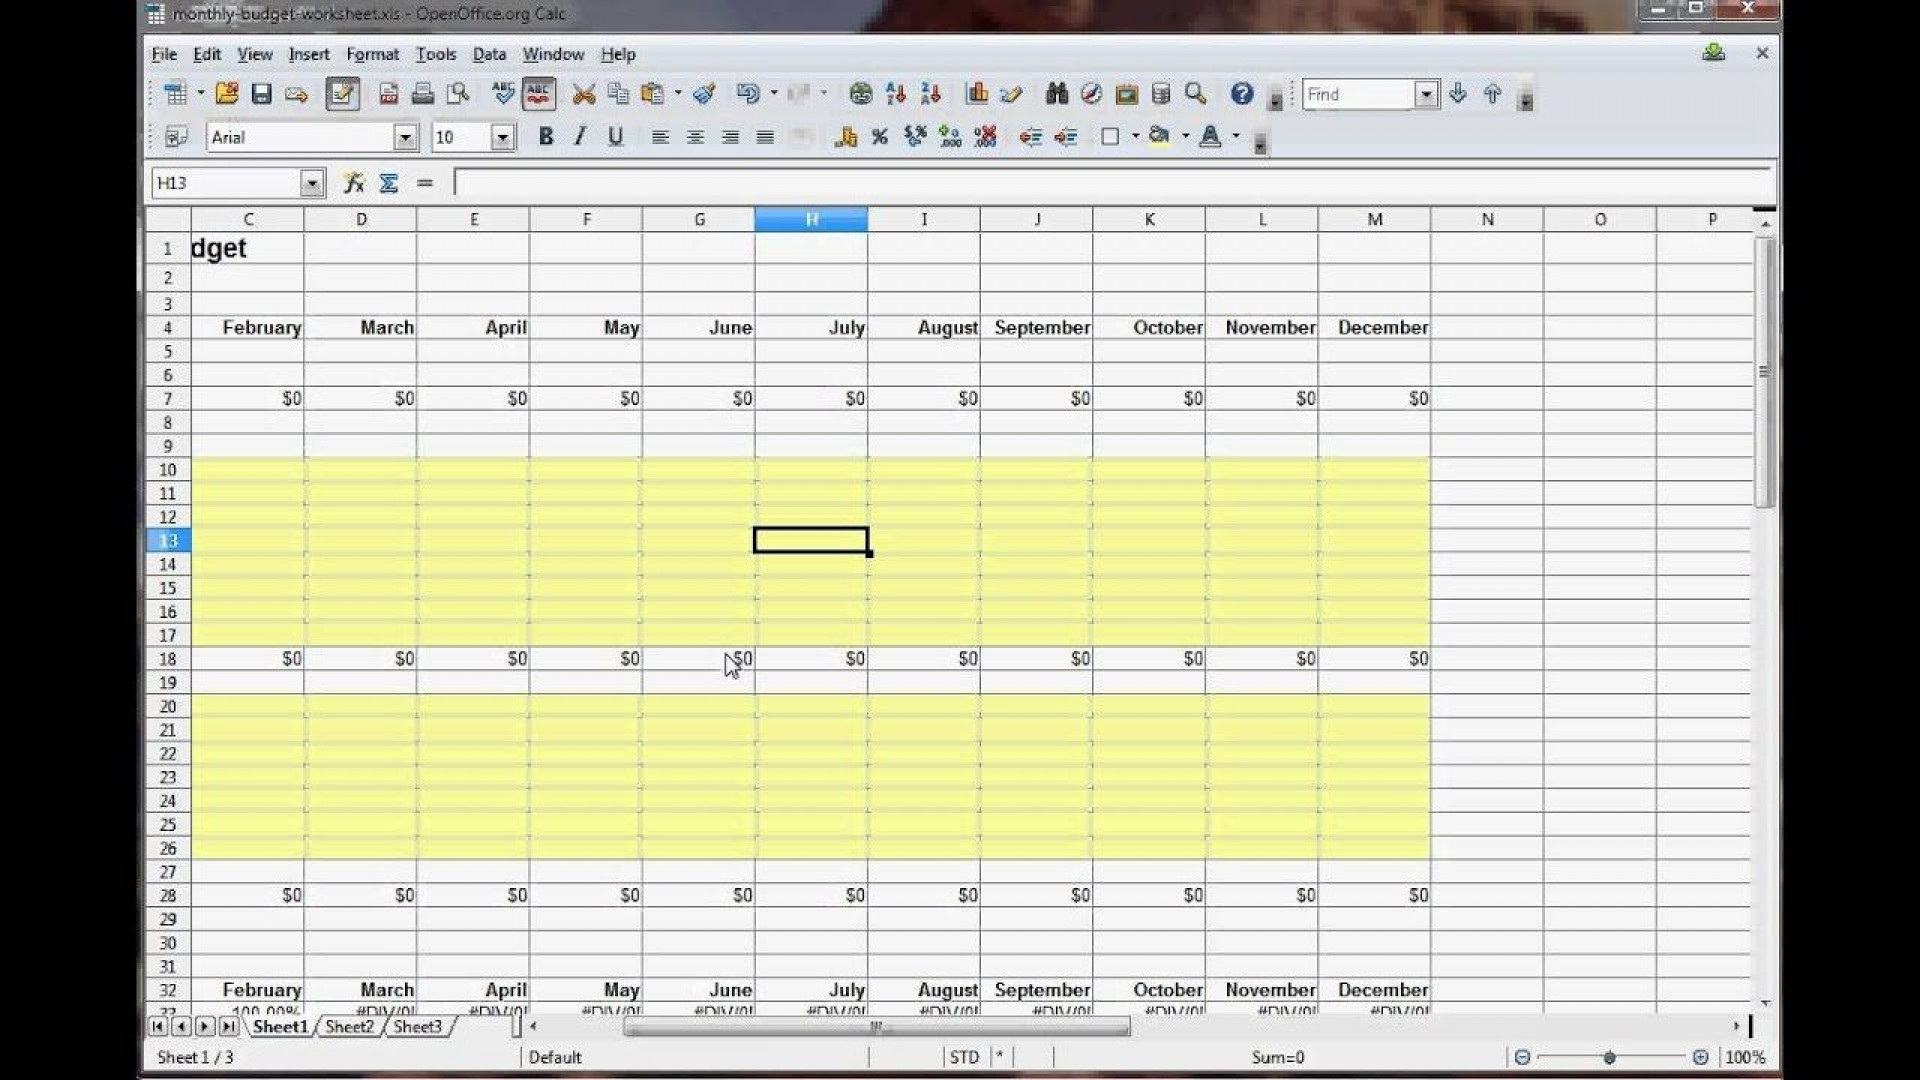 003 Impressive Personal Budget Spreadsheet Template For Mac Example 1920